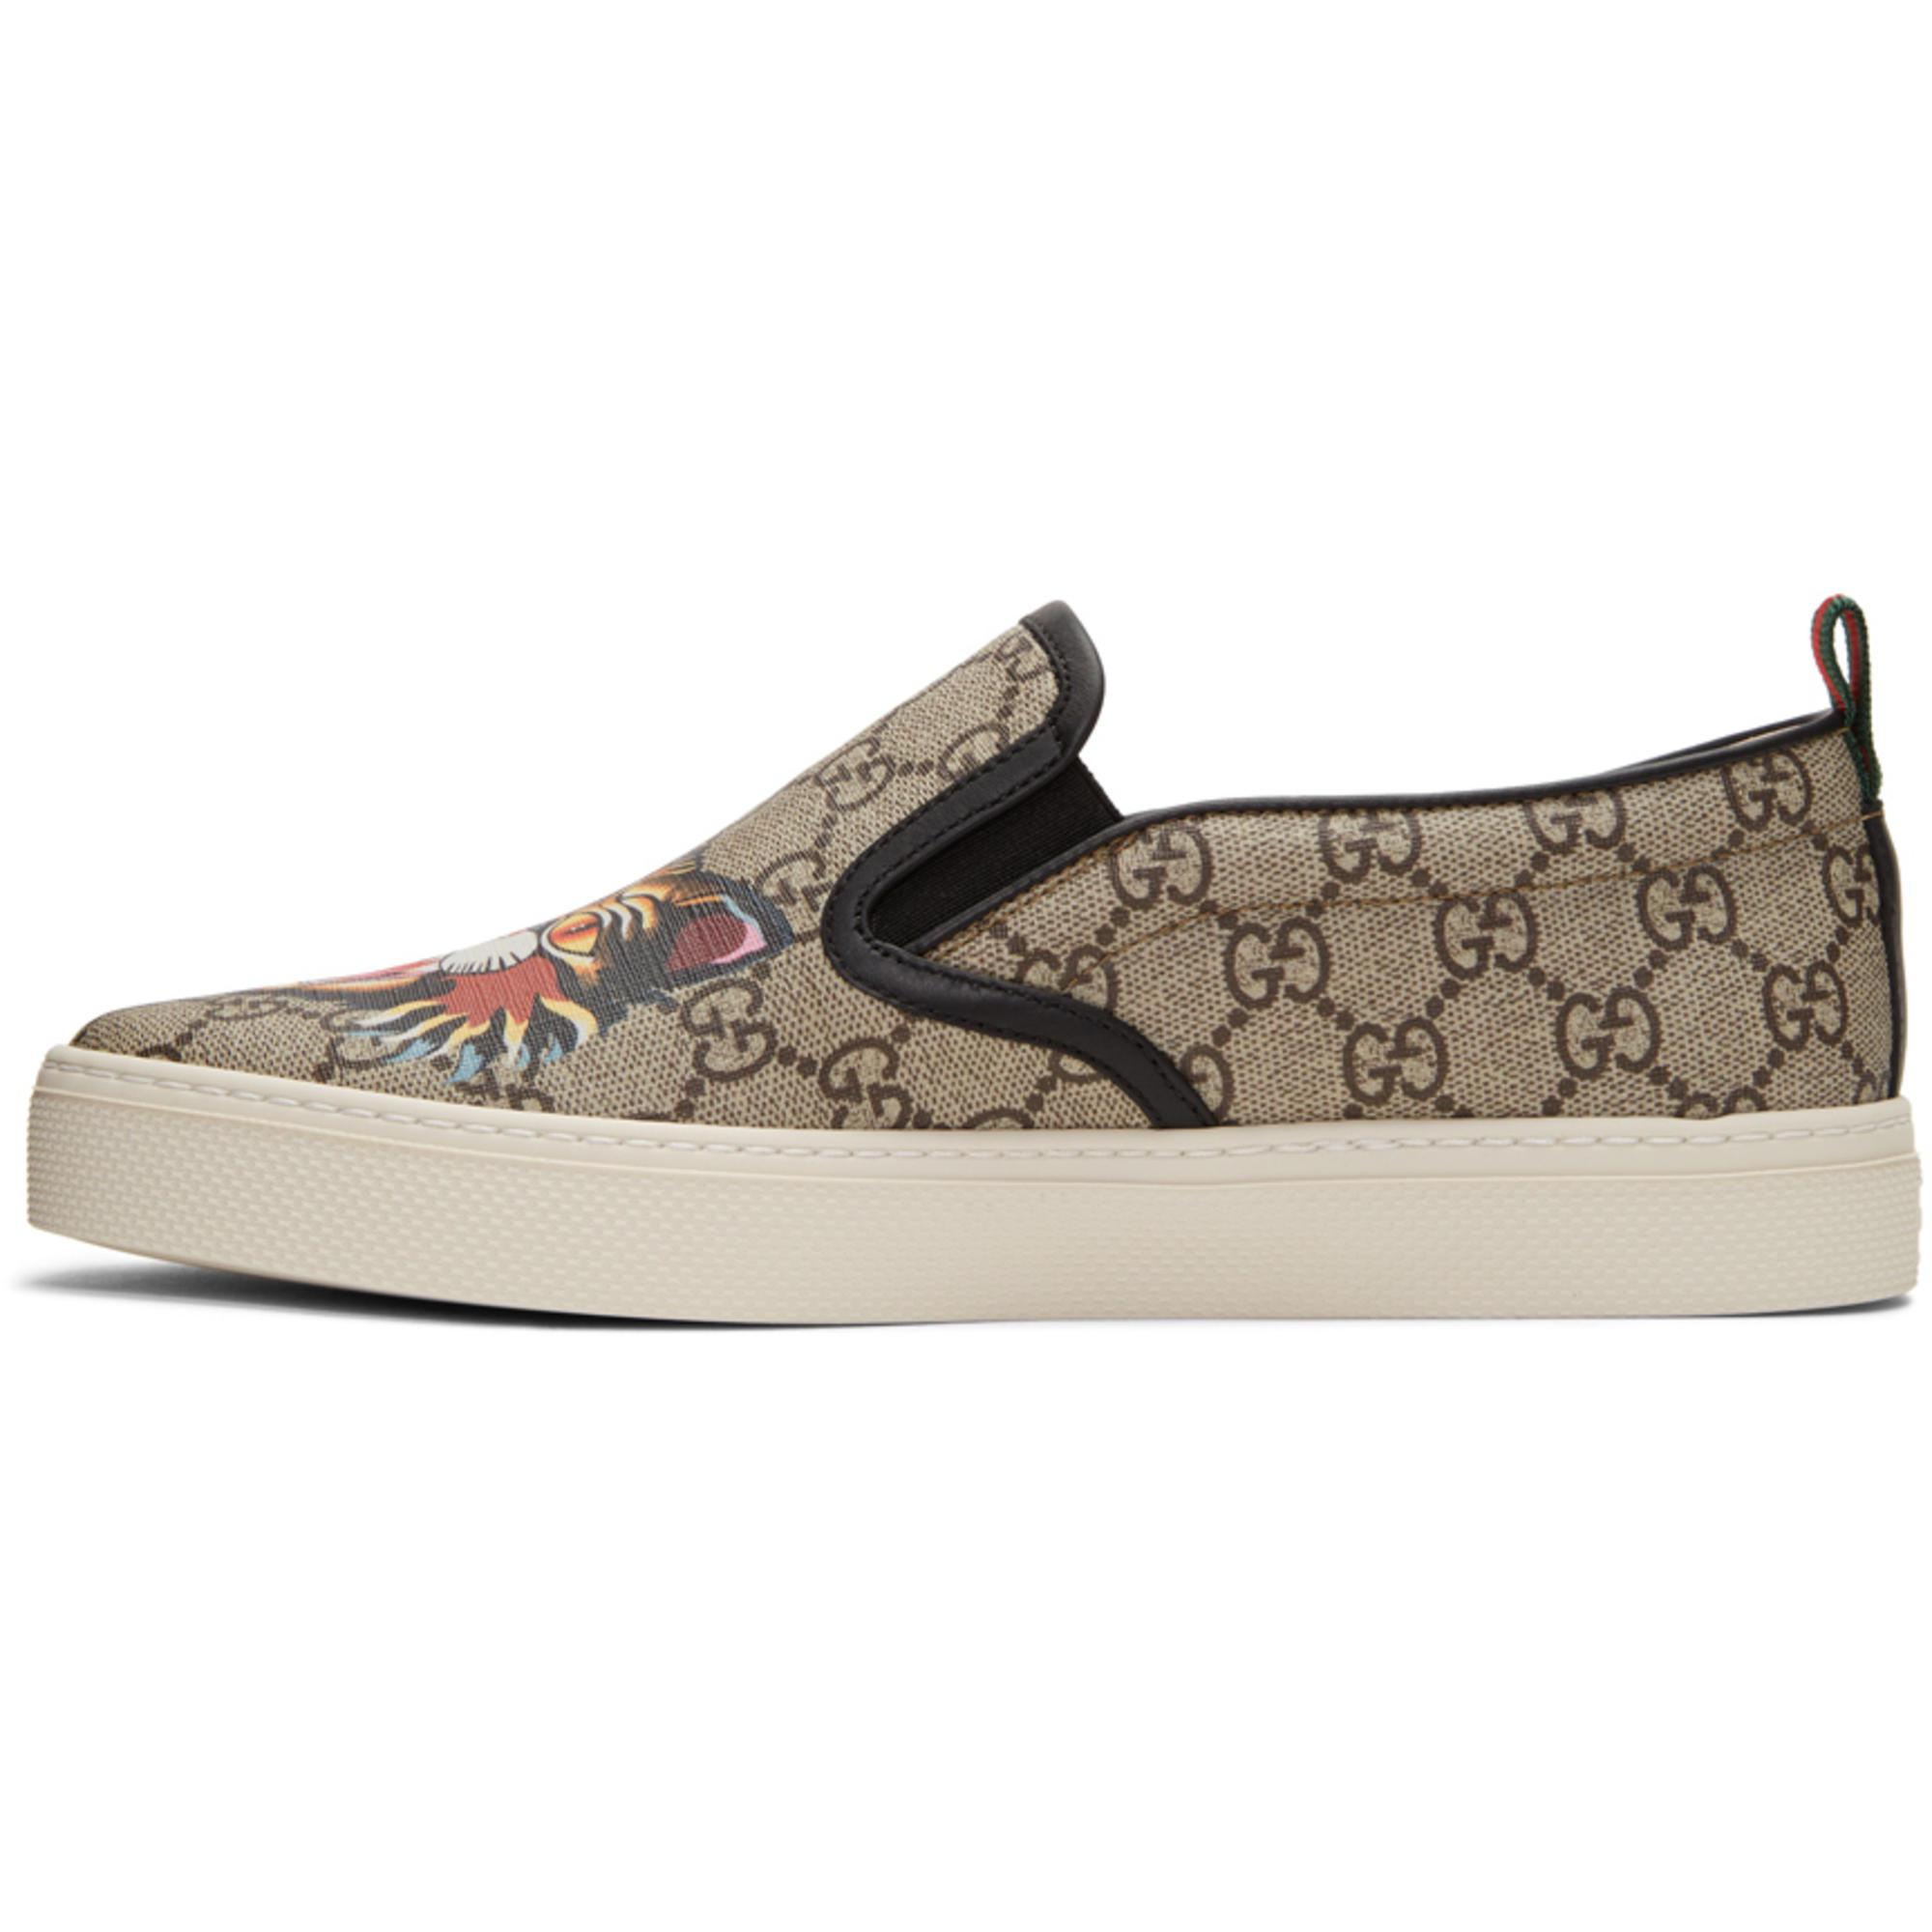 957045a7d8b Lyst - Gucci Beige Gg Supreme Angry Cat Dublin Slip-on Sneakers in ...